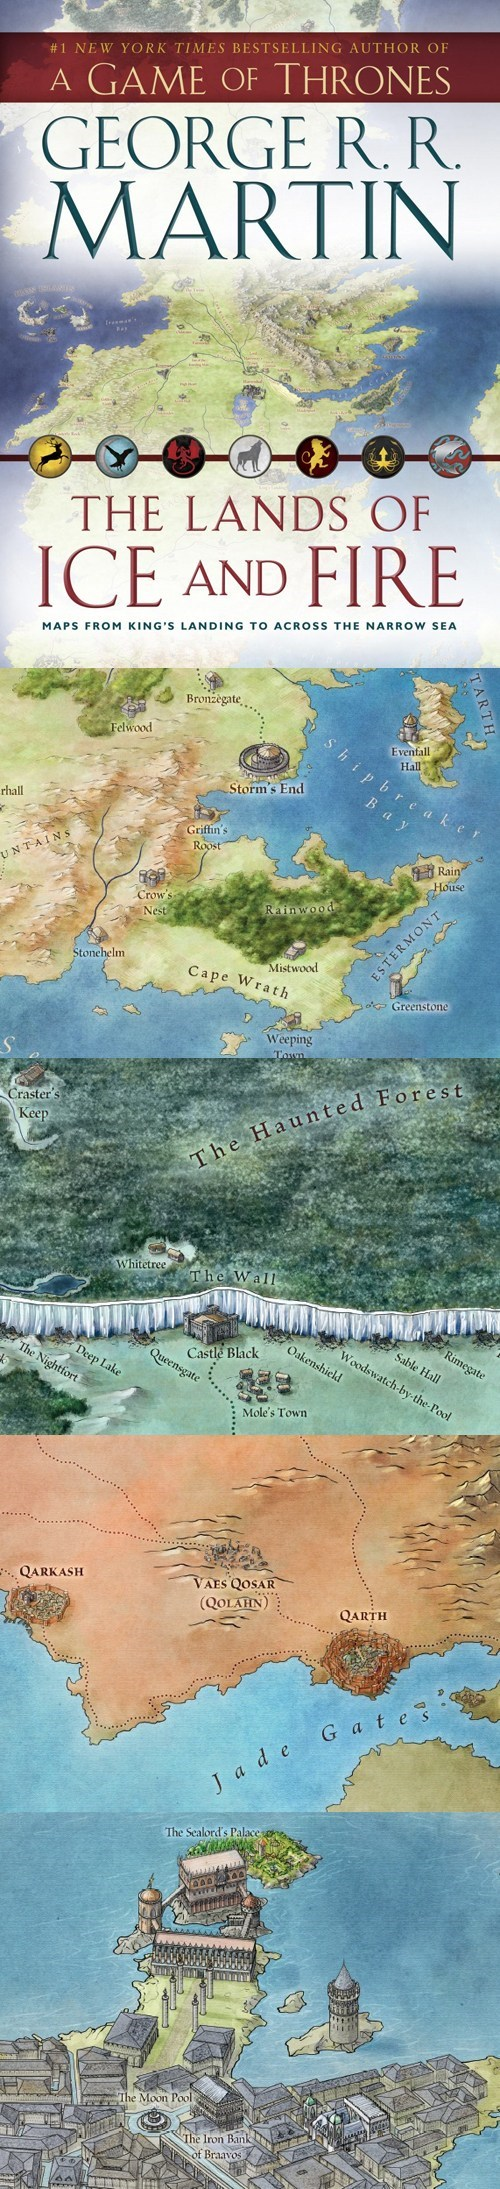 Maps Westeros George R.R.Martin a song of ice and fire Game of Thrones - 6705358080